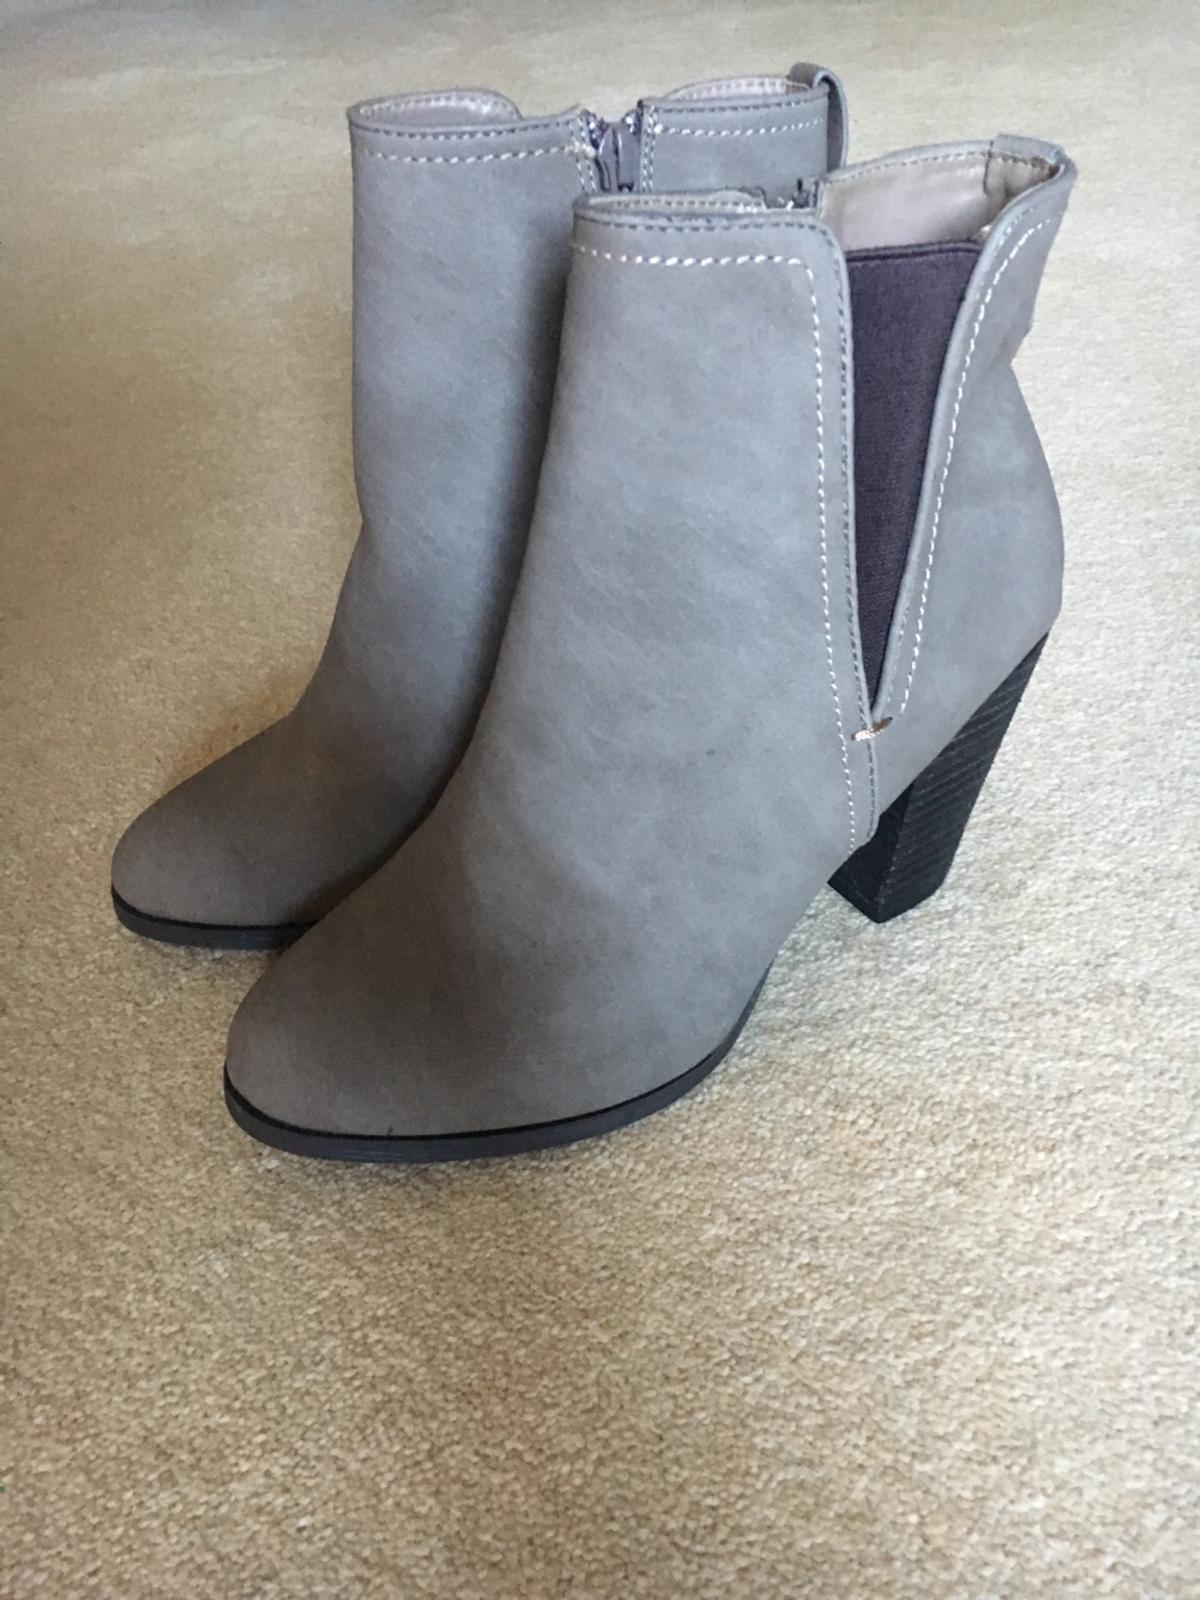 c6c1c4bc069 Debenhams taupe heeled boot size 7 new in B97 Redditch for £10.00 ...